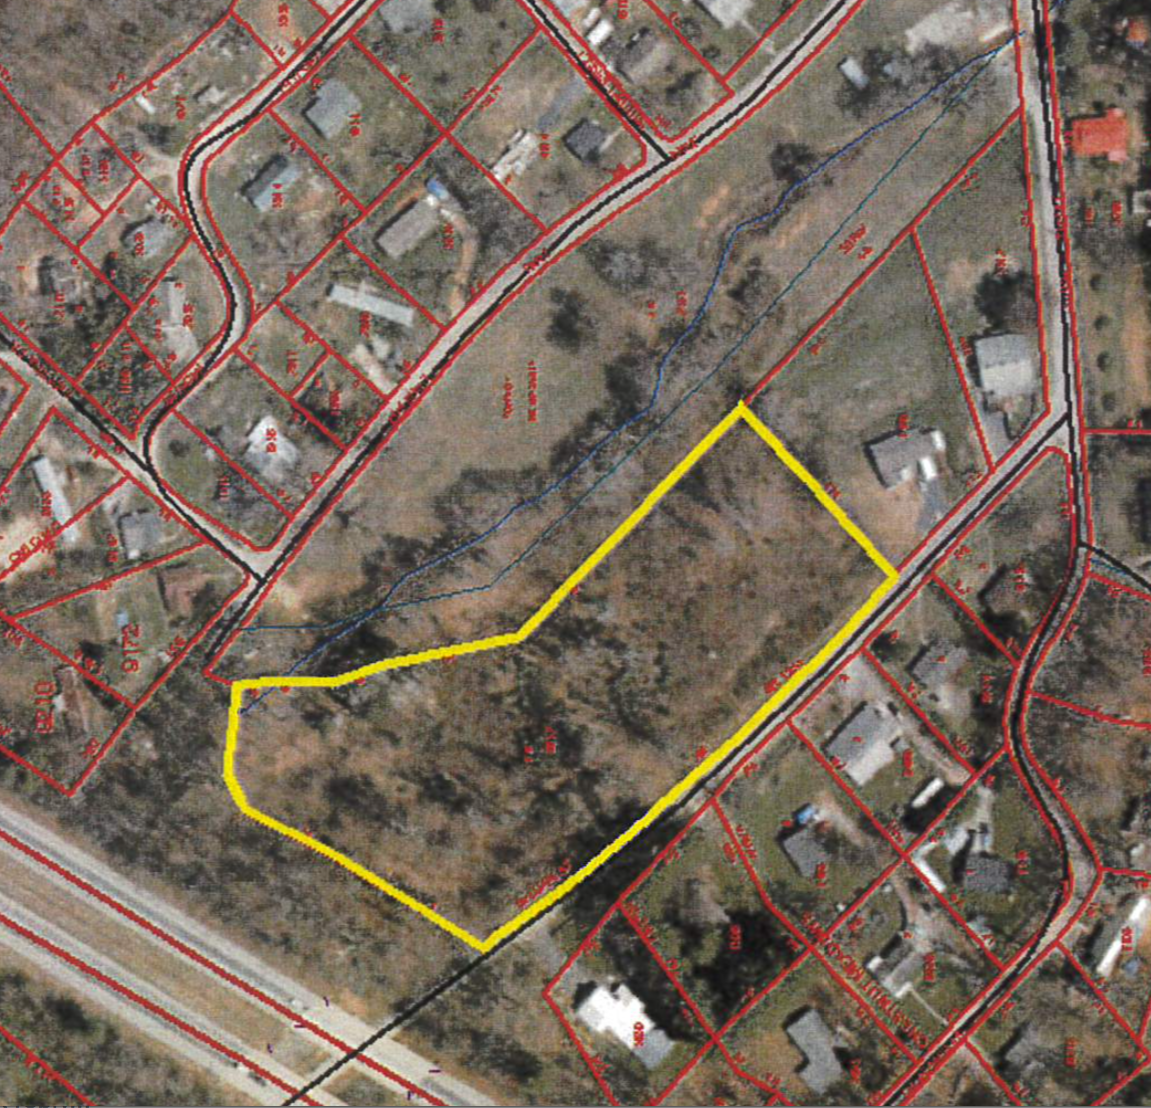 Plan for second Waynesville neighborhood approved